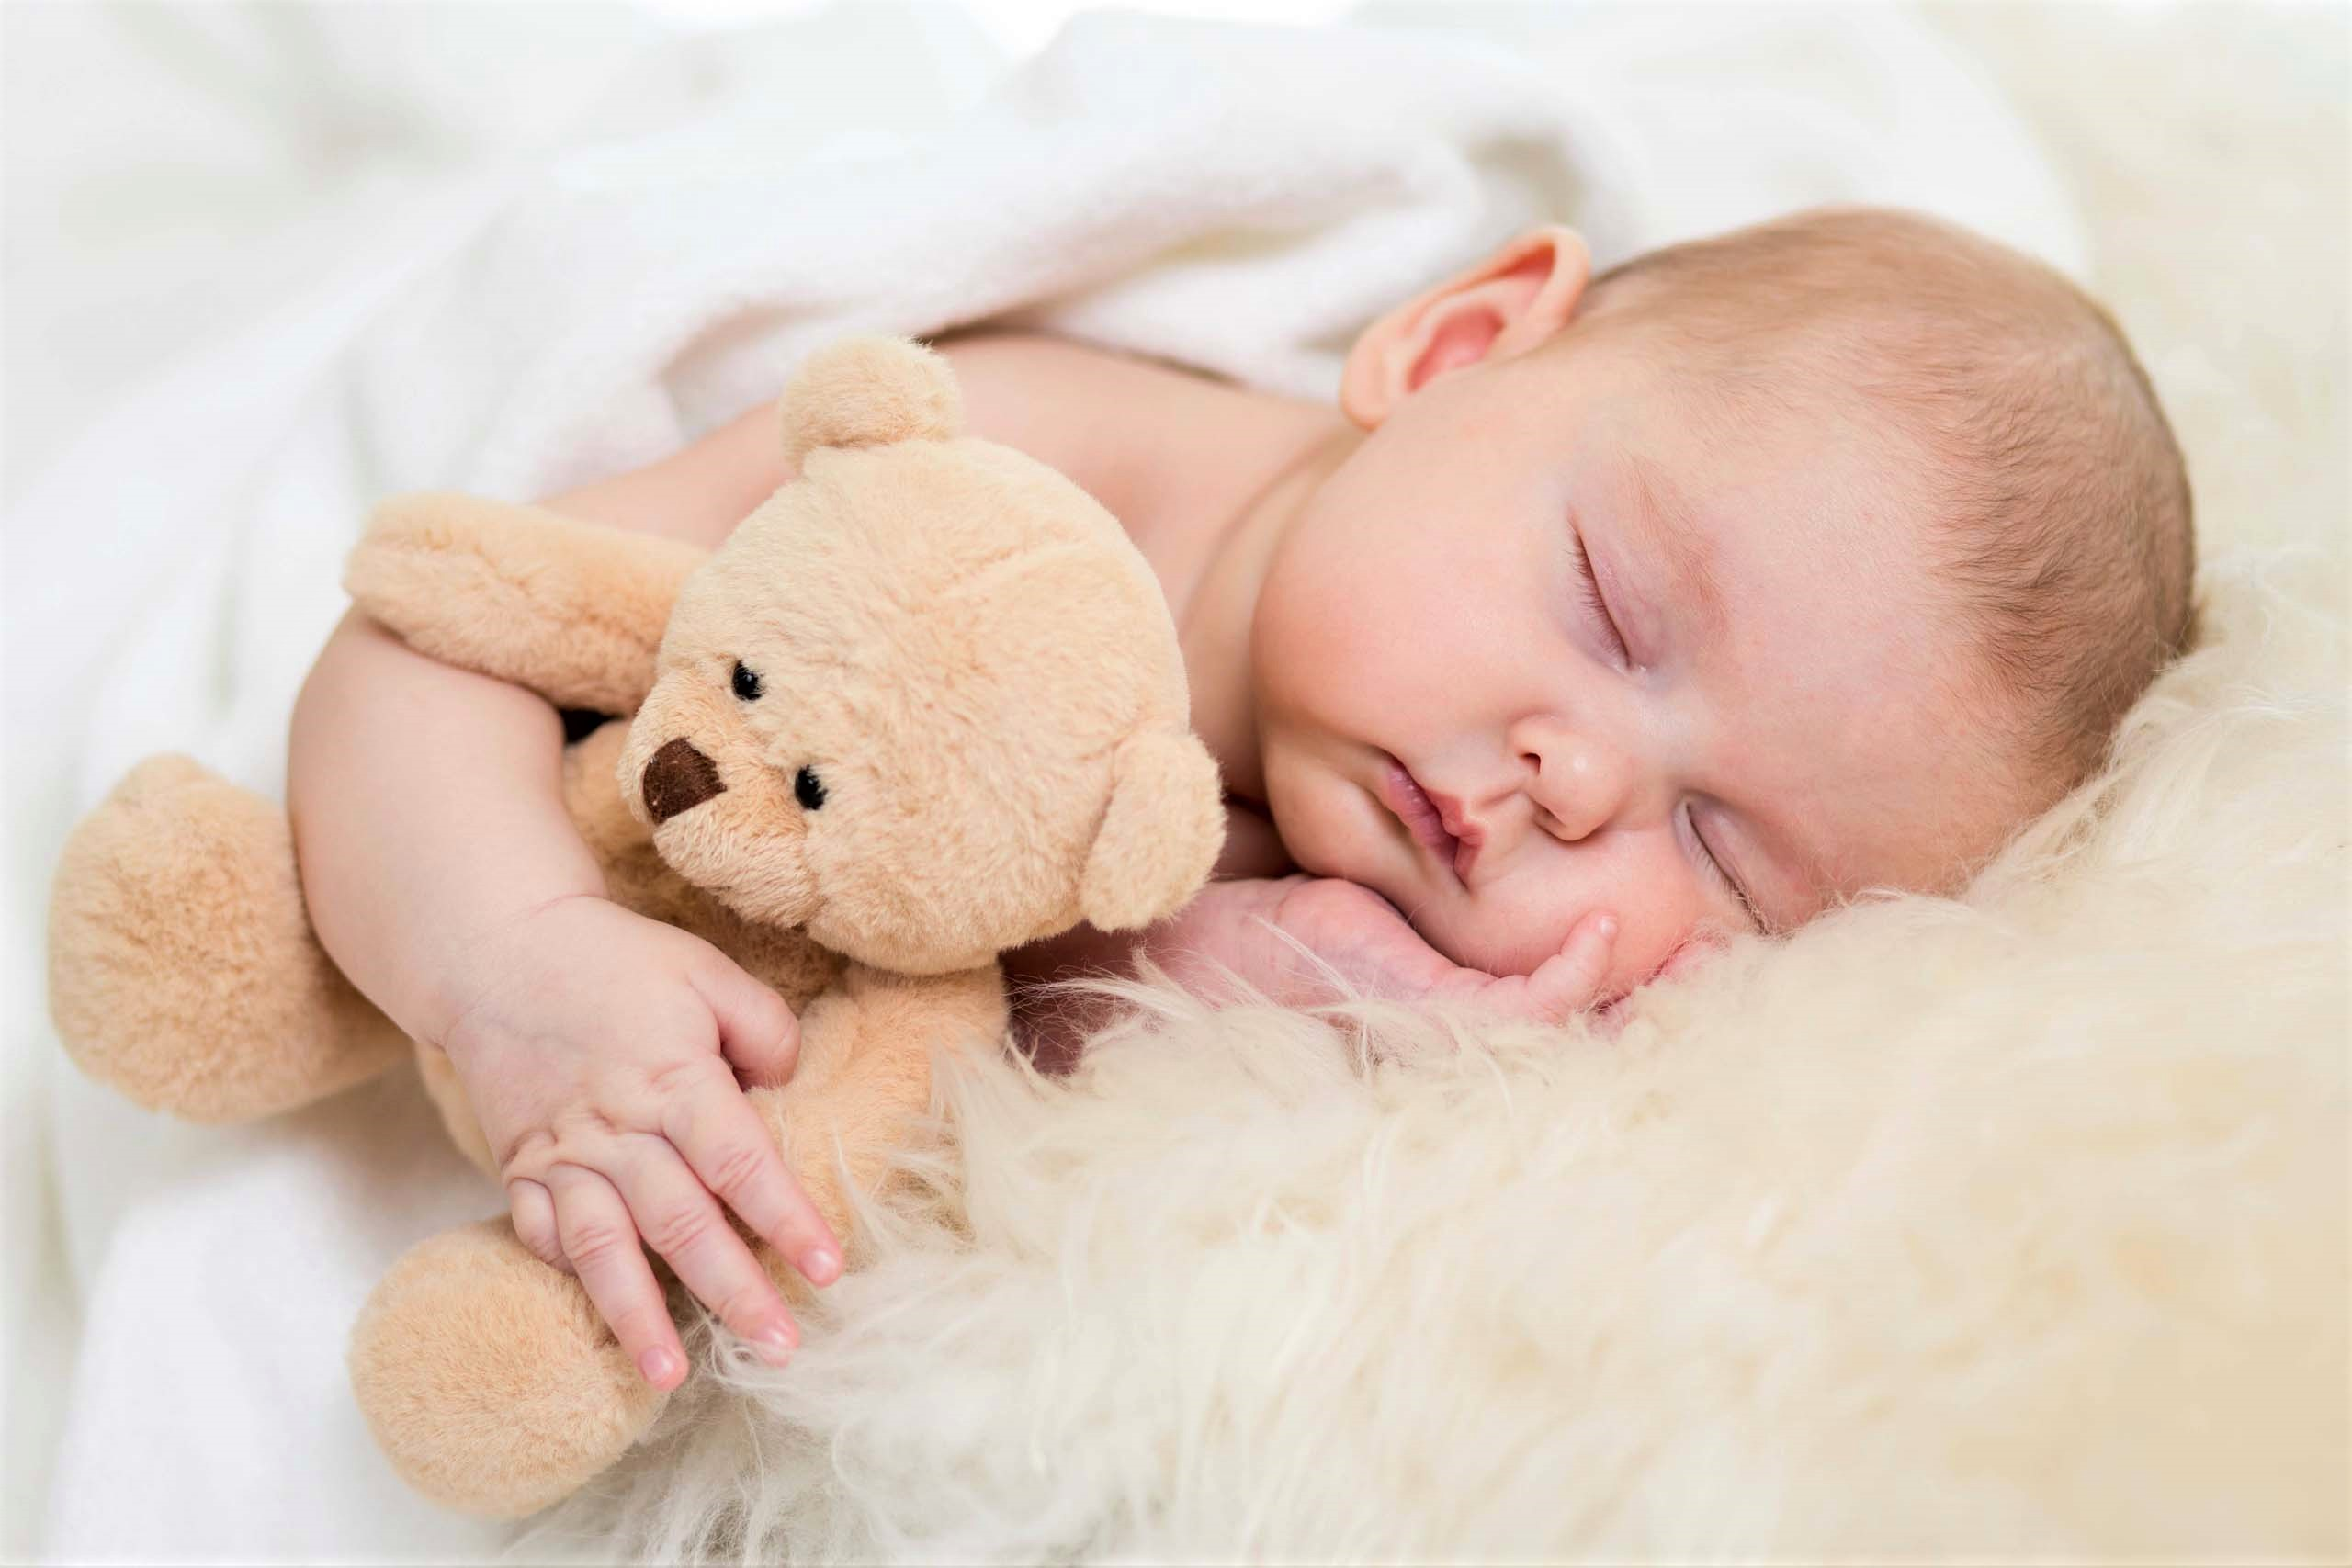 Sweet Sleeping Baby Bay Hd Wallpaper Background Image 2560x1707 Id 905303 Wallpaper Abyss